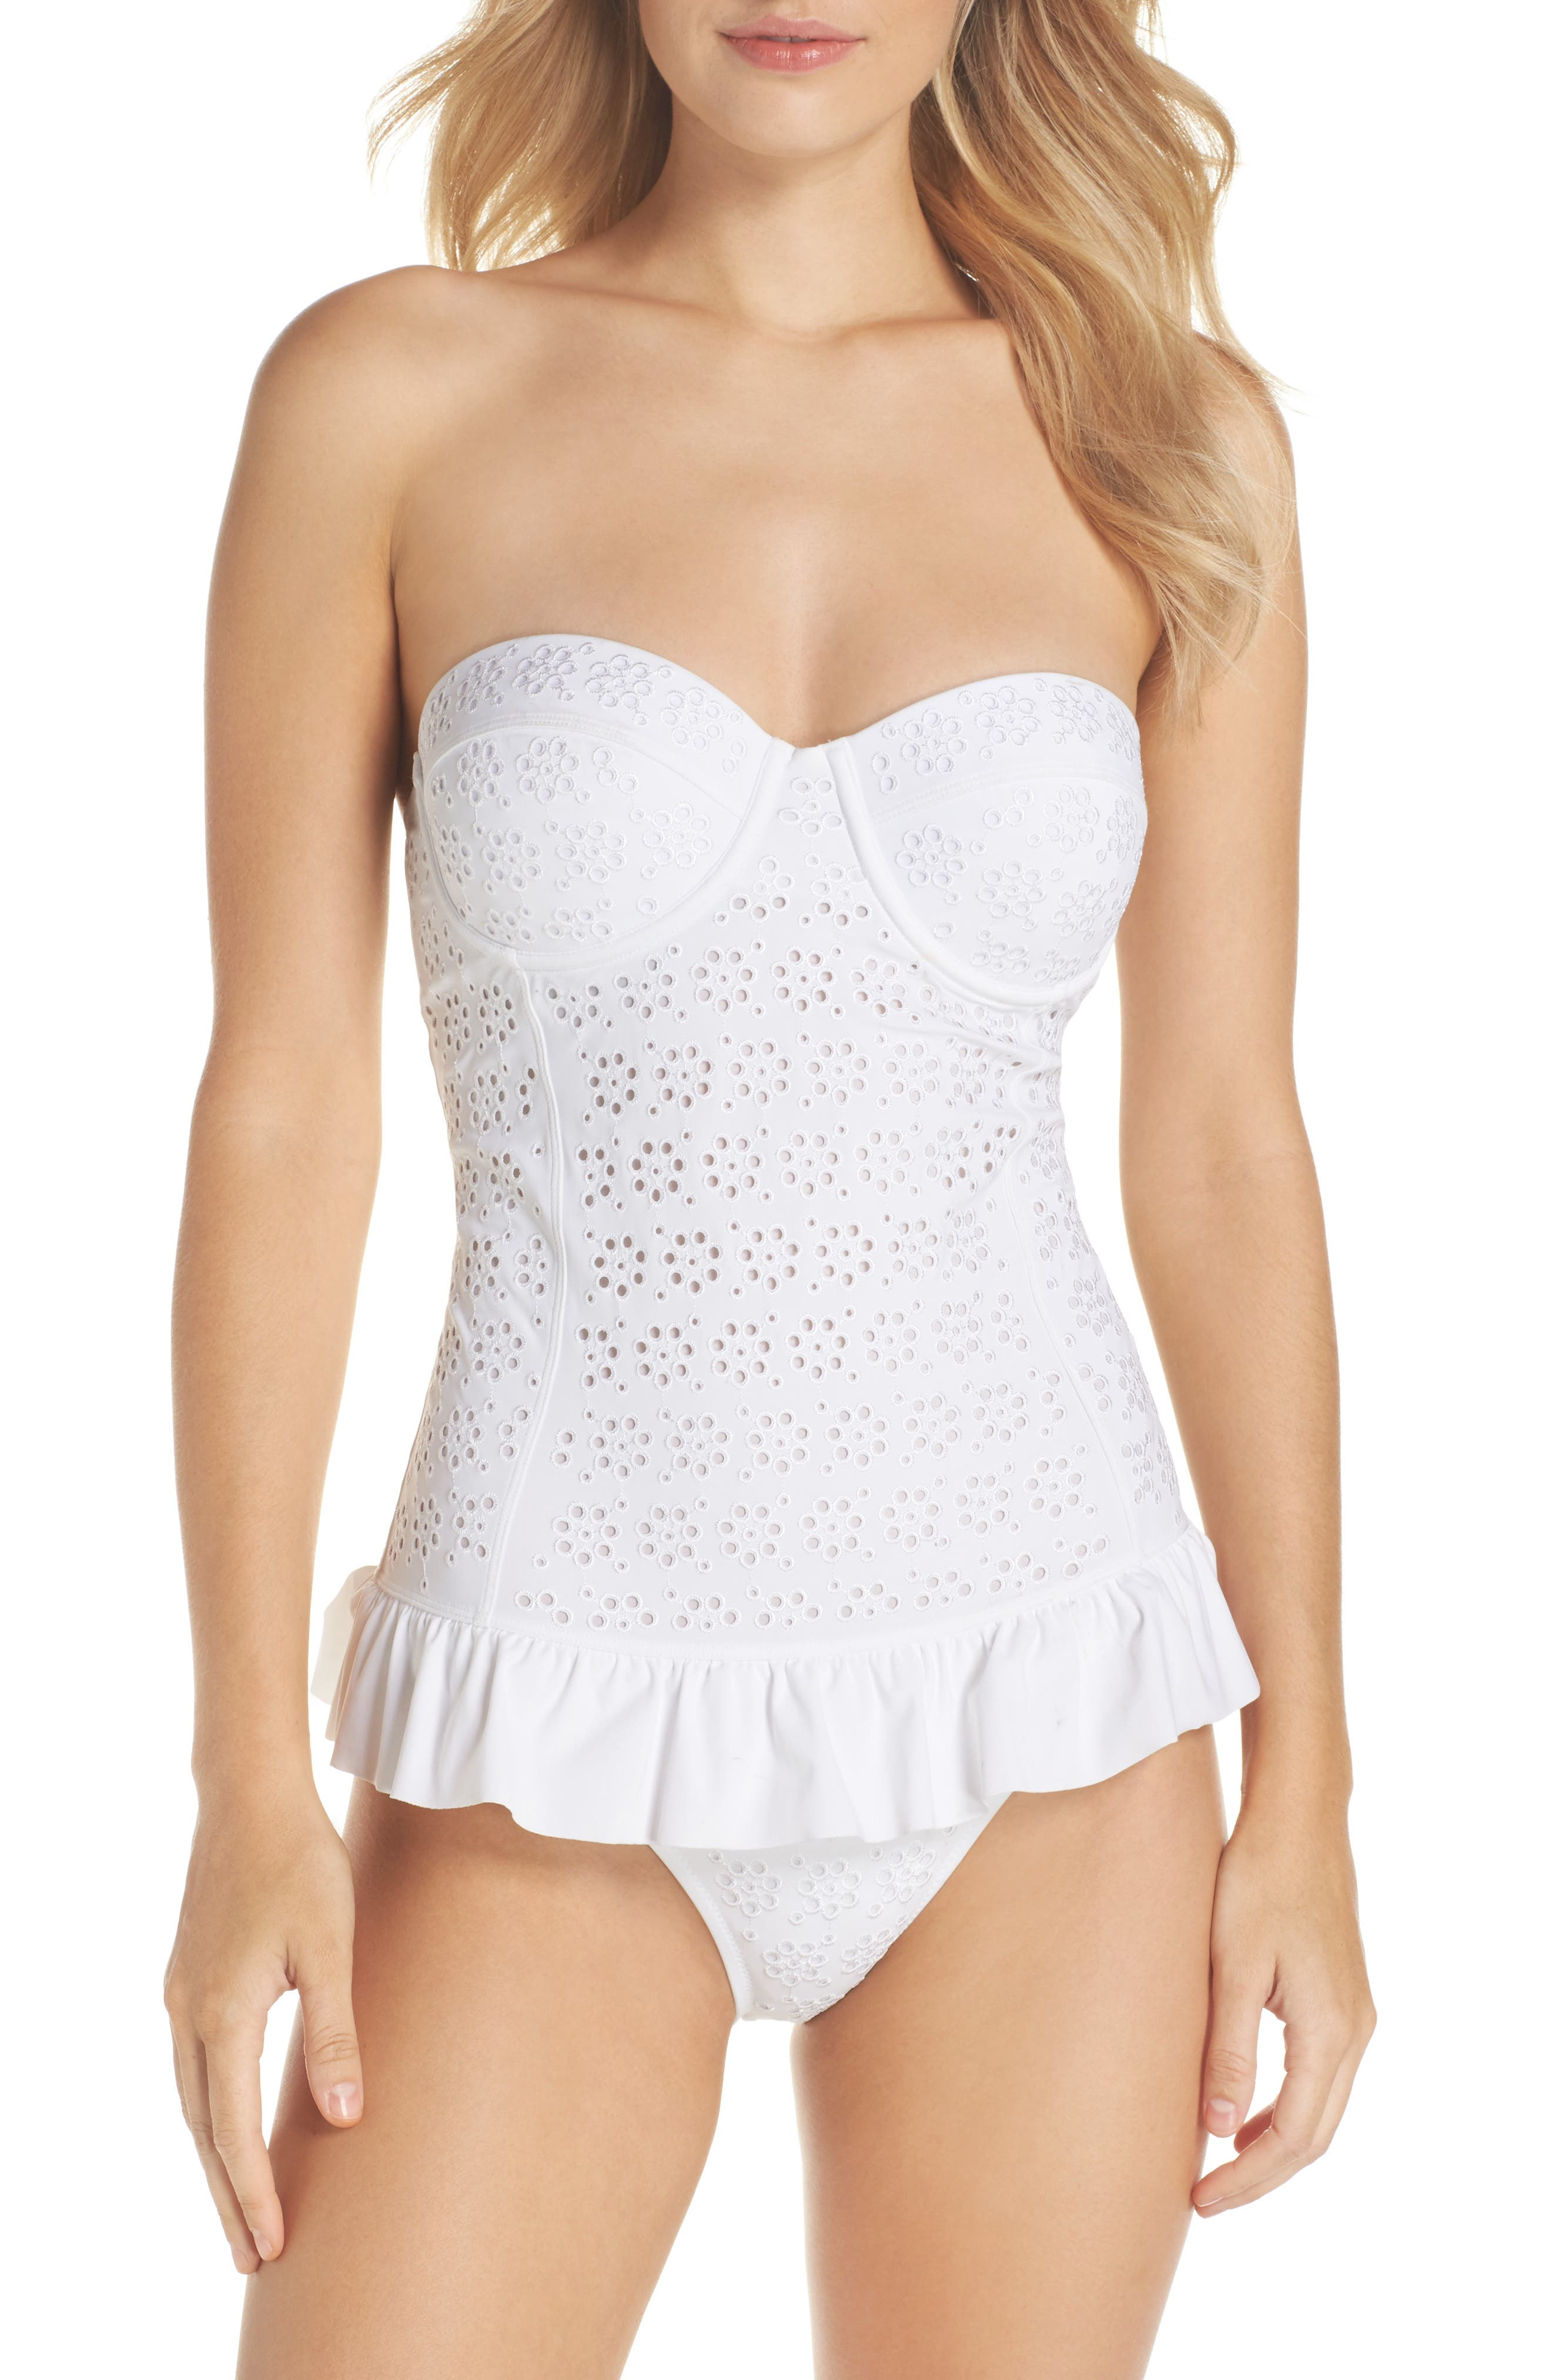 TORY BURCH Broderie Anglais Flounce Convertible One-Piece Swimsuit, Main, color, 100